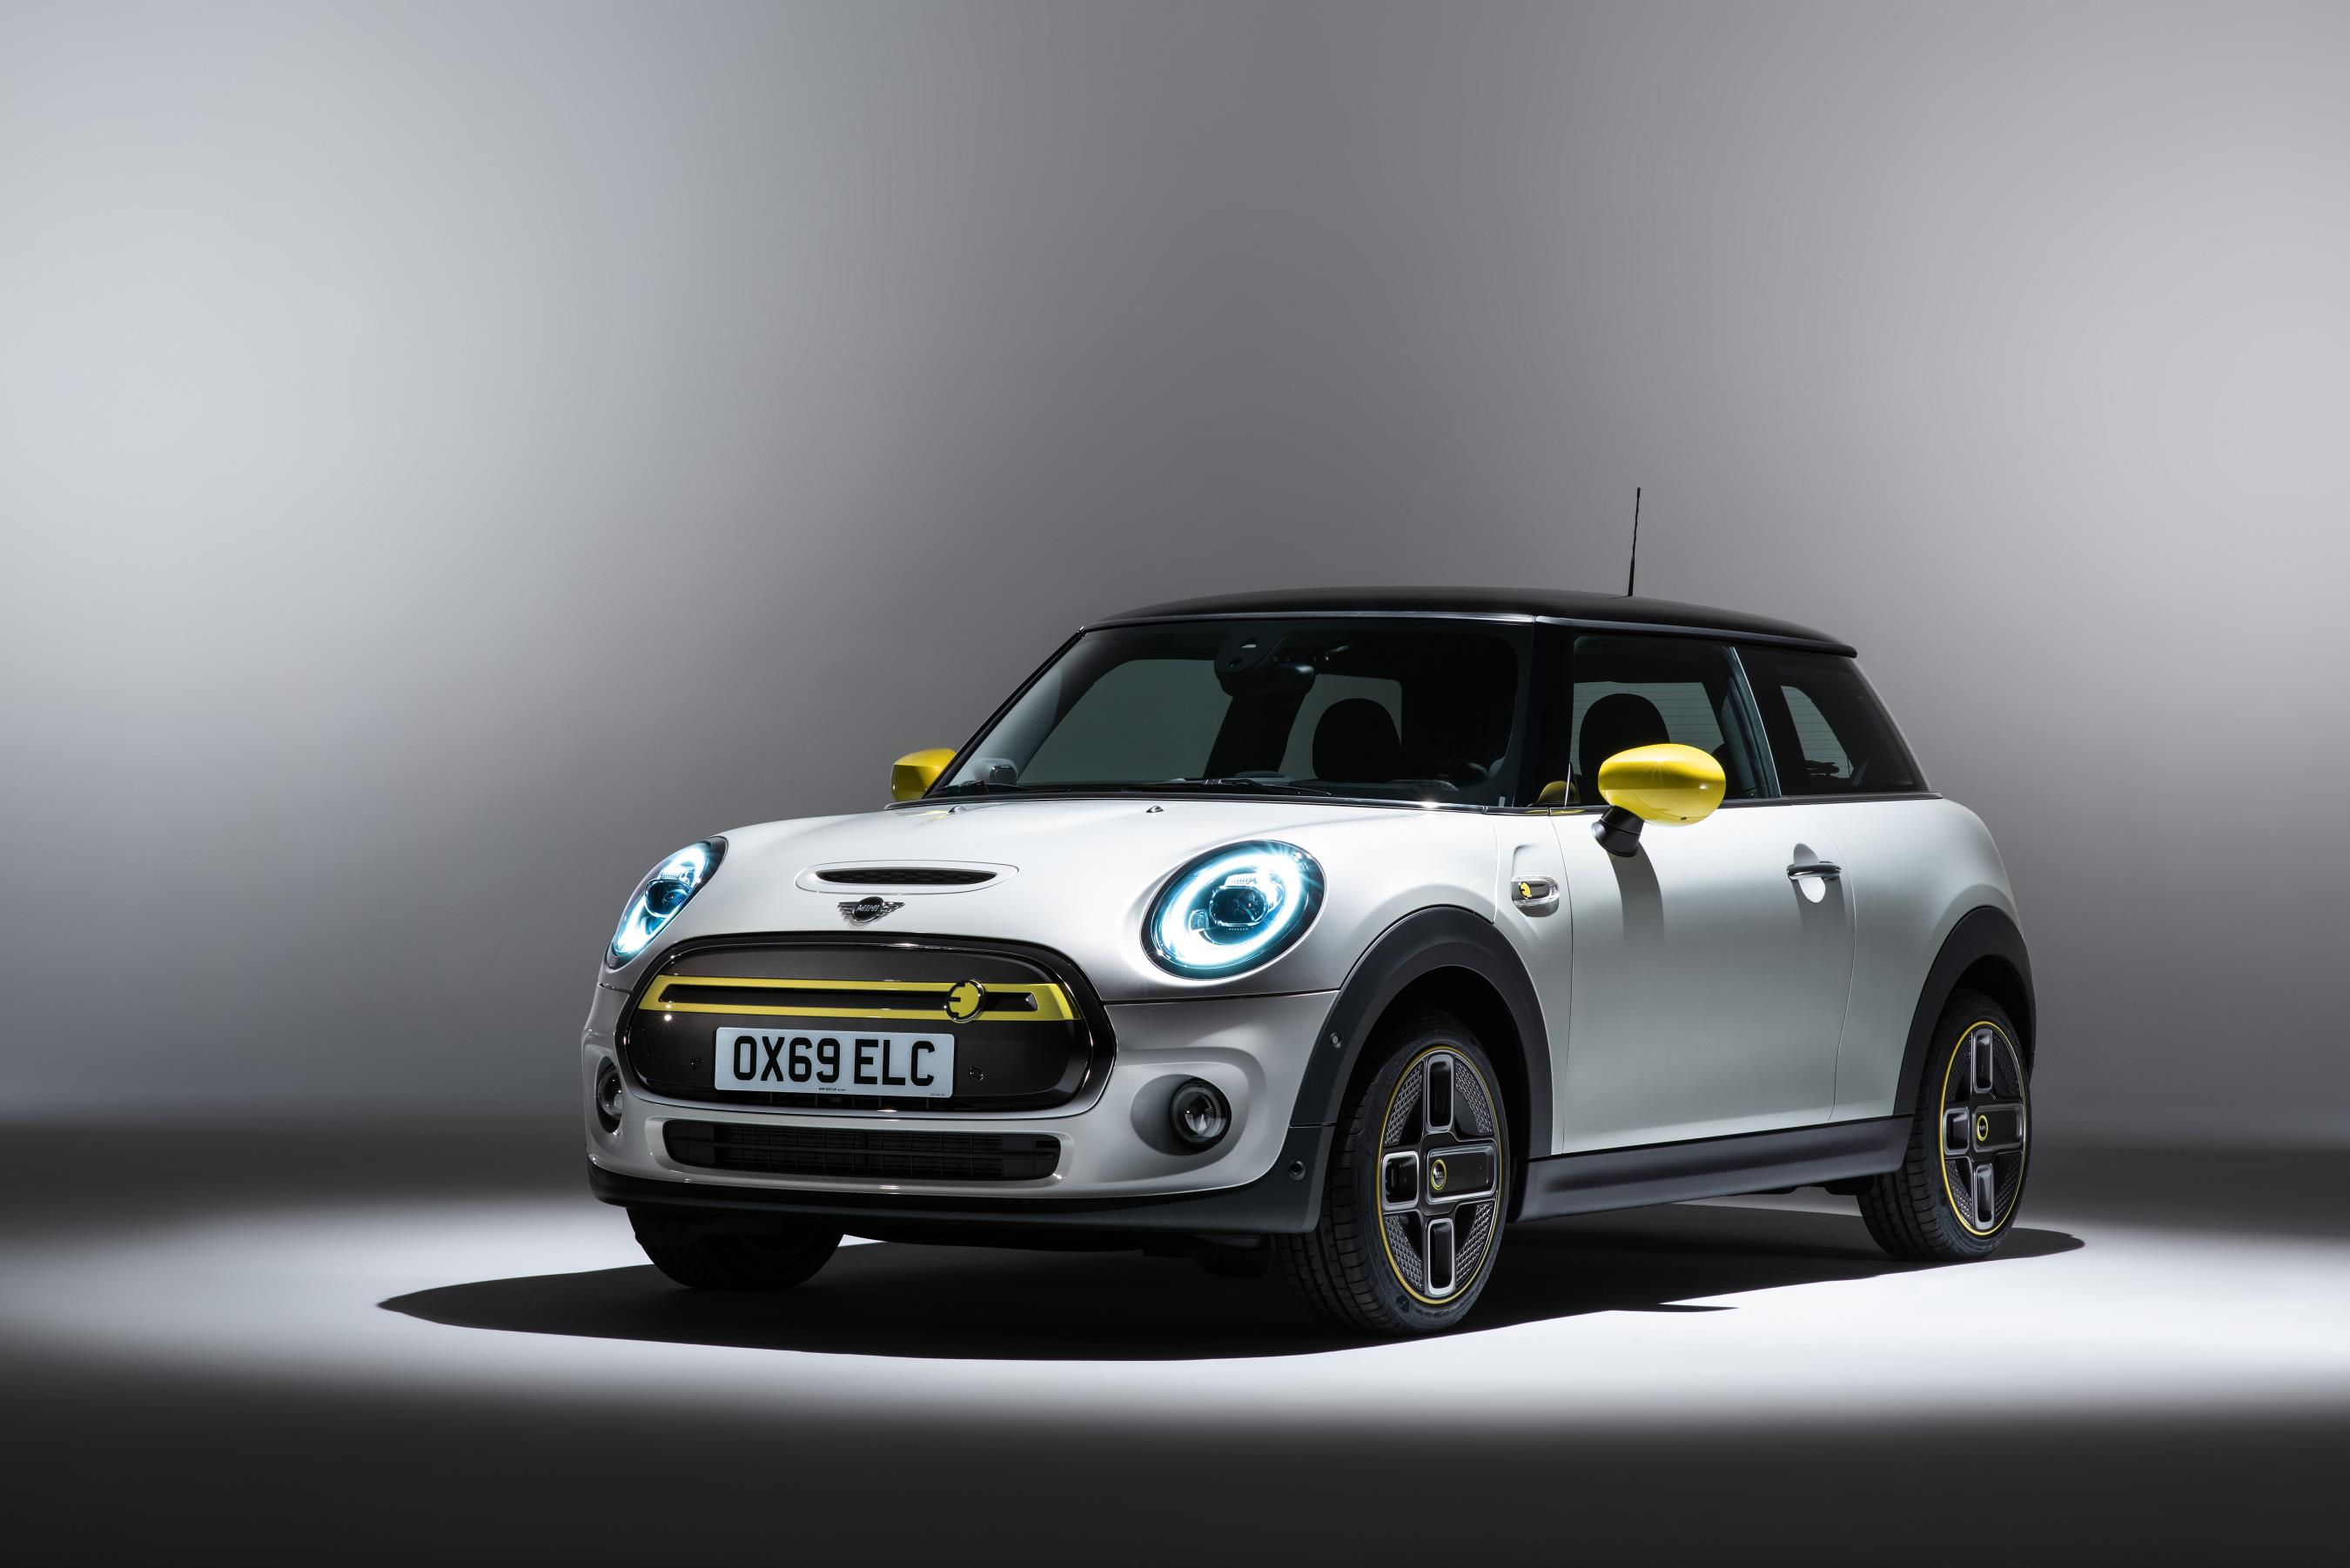 The Mini Electric gets the firm's typically retro styling